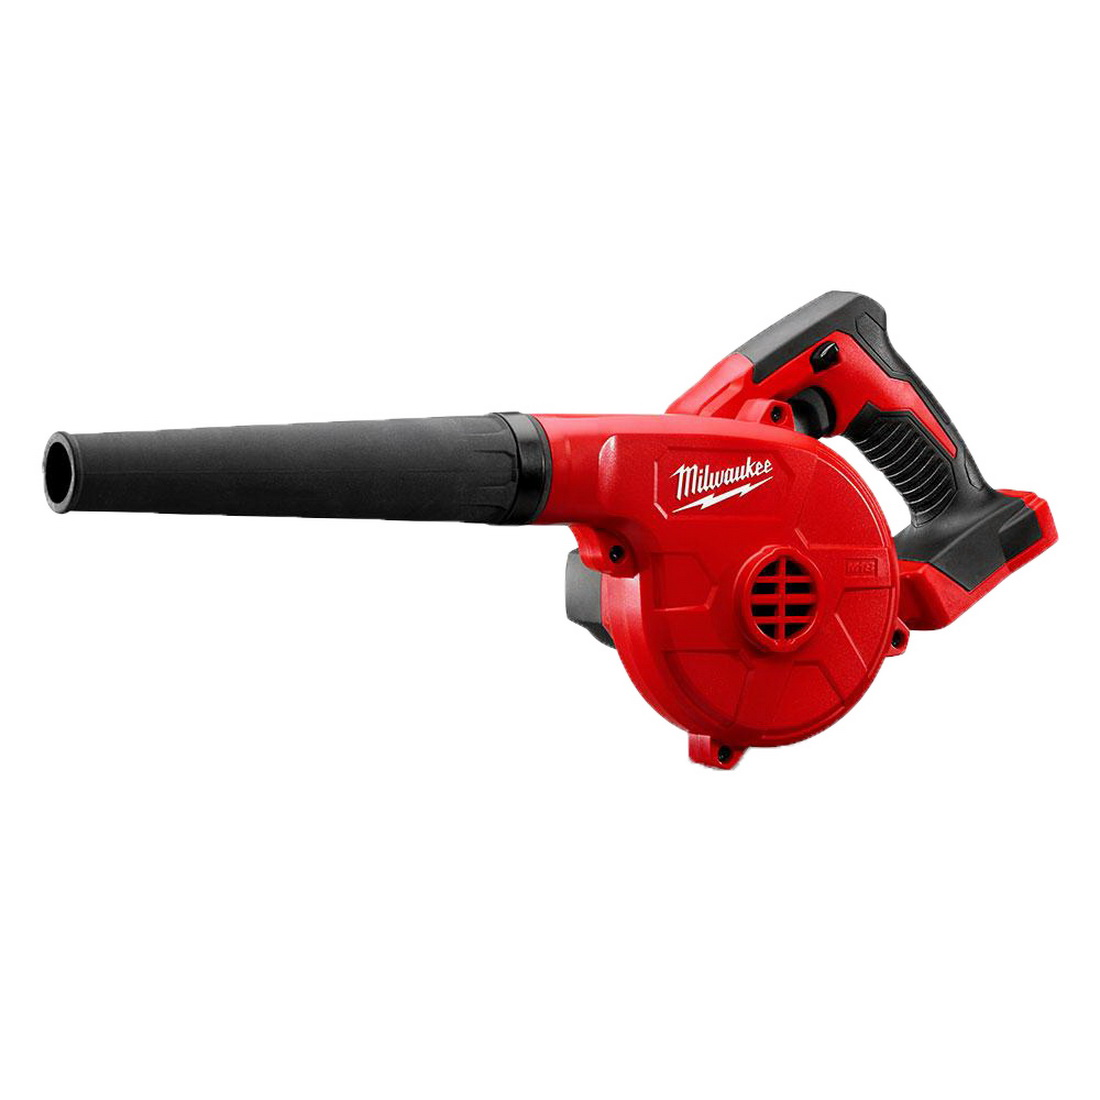 M18 Li-Ion Cordless 3 Speed Compact Blower Skin Only 18V 160MPH M18BBL-0